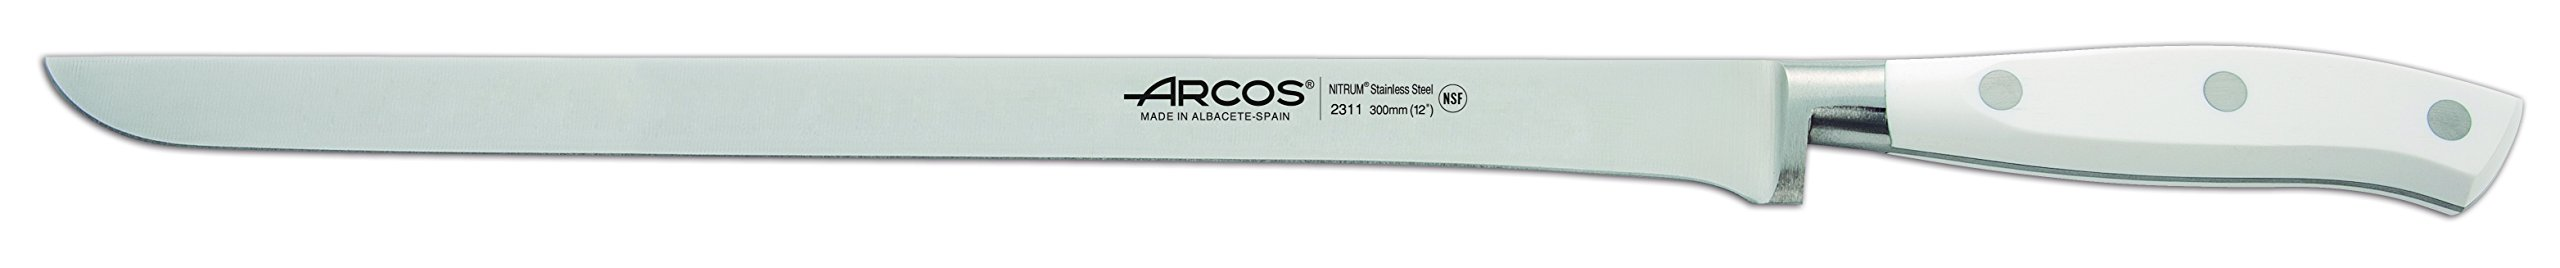 Arcos Riviera Forged Slicing Flexible Ham Knife with White Handle, 12-Inch